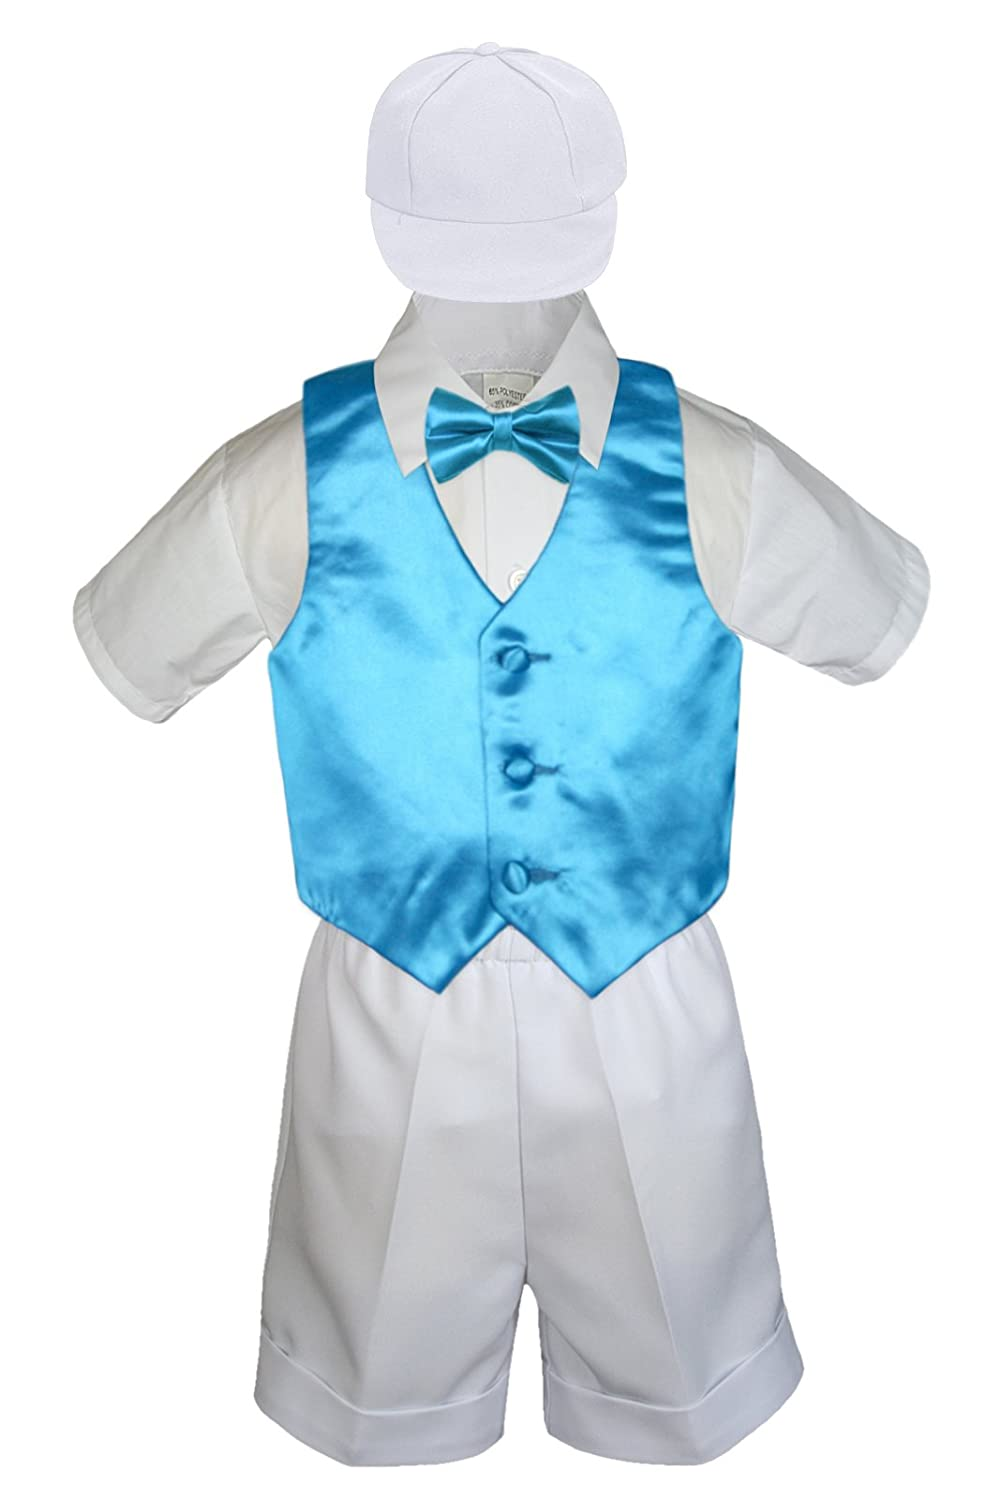 5pc Baby Toddler Boys Turquoise Blue Vest Bow Tie Set White Suits S-4T M: 6-12 months